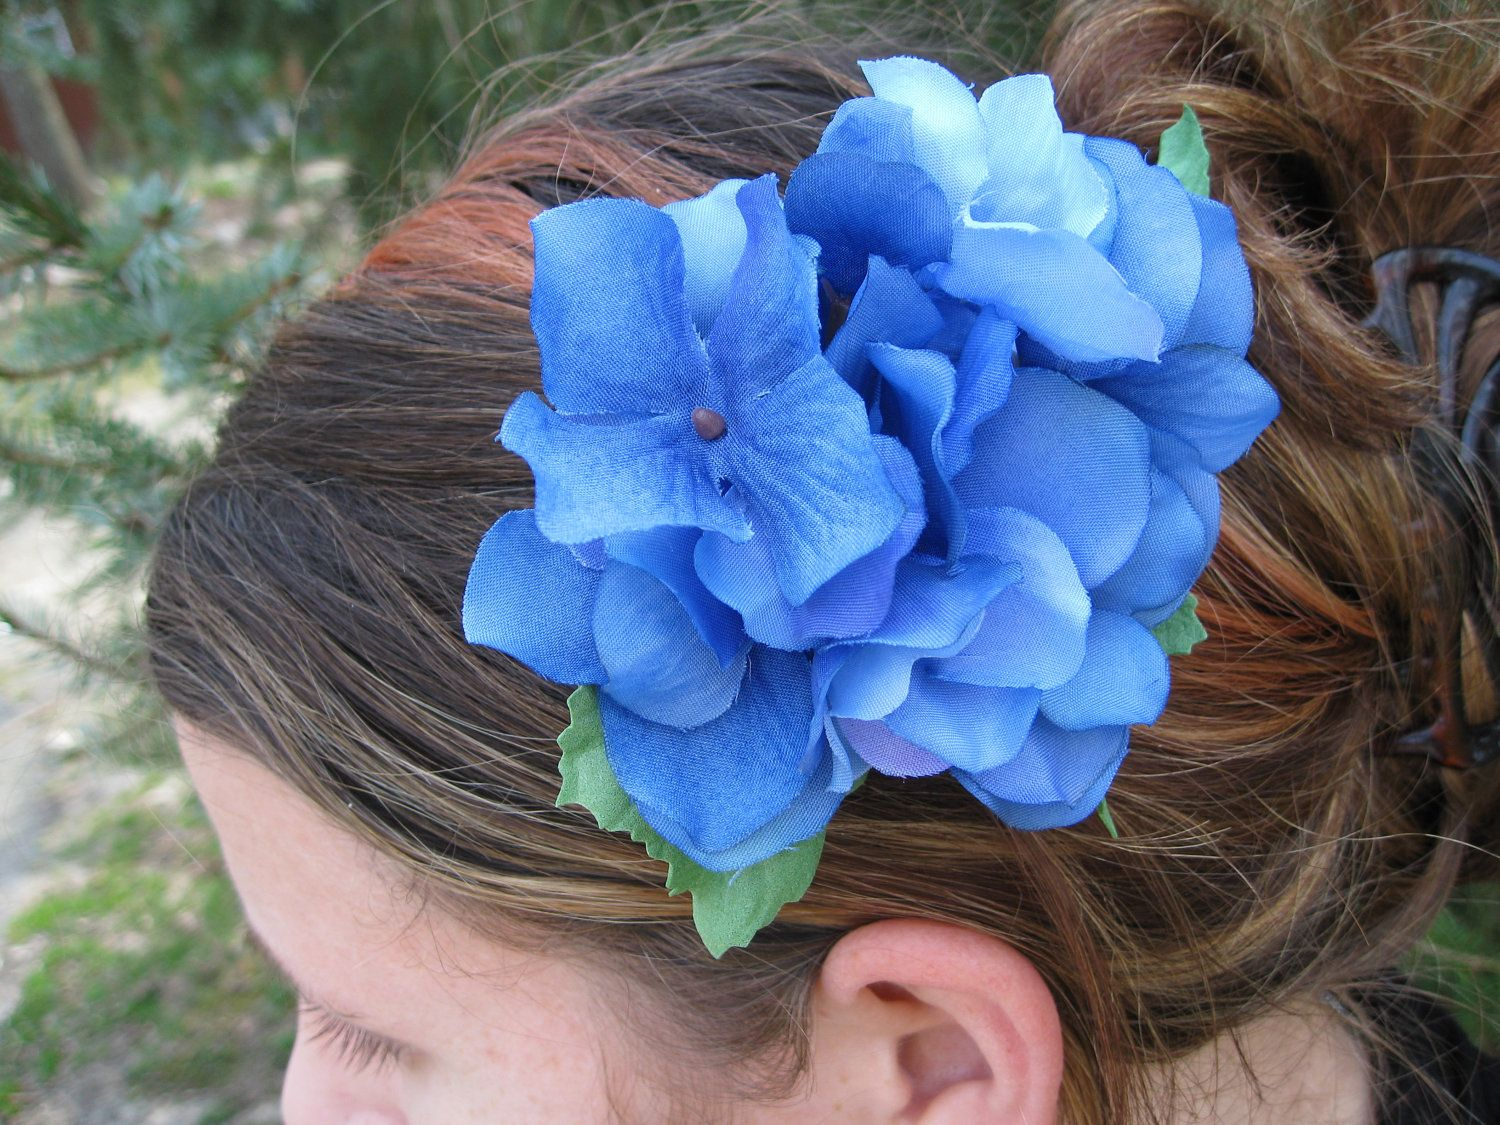 Blue hydrangea flower hair piece flower girl bride bridesmaid blue hydrangea flower hair piece flower girl bride bridesmaid wedding hair accessories special orders welcome izmirmasajfo Image collections